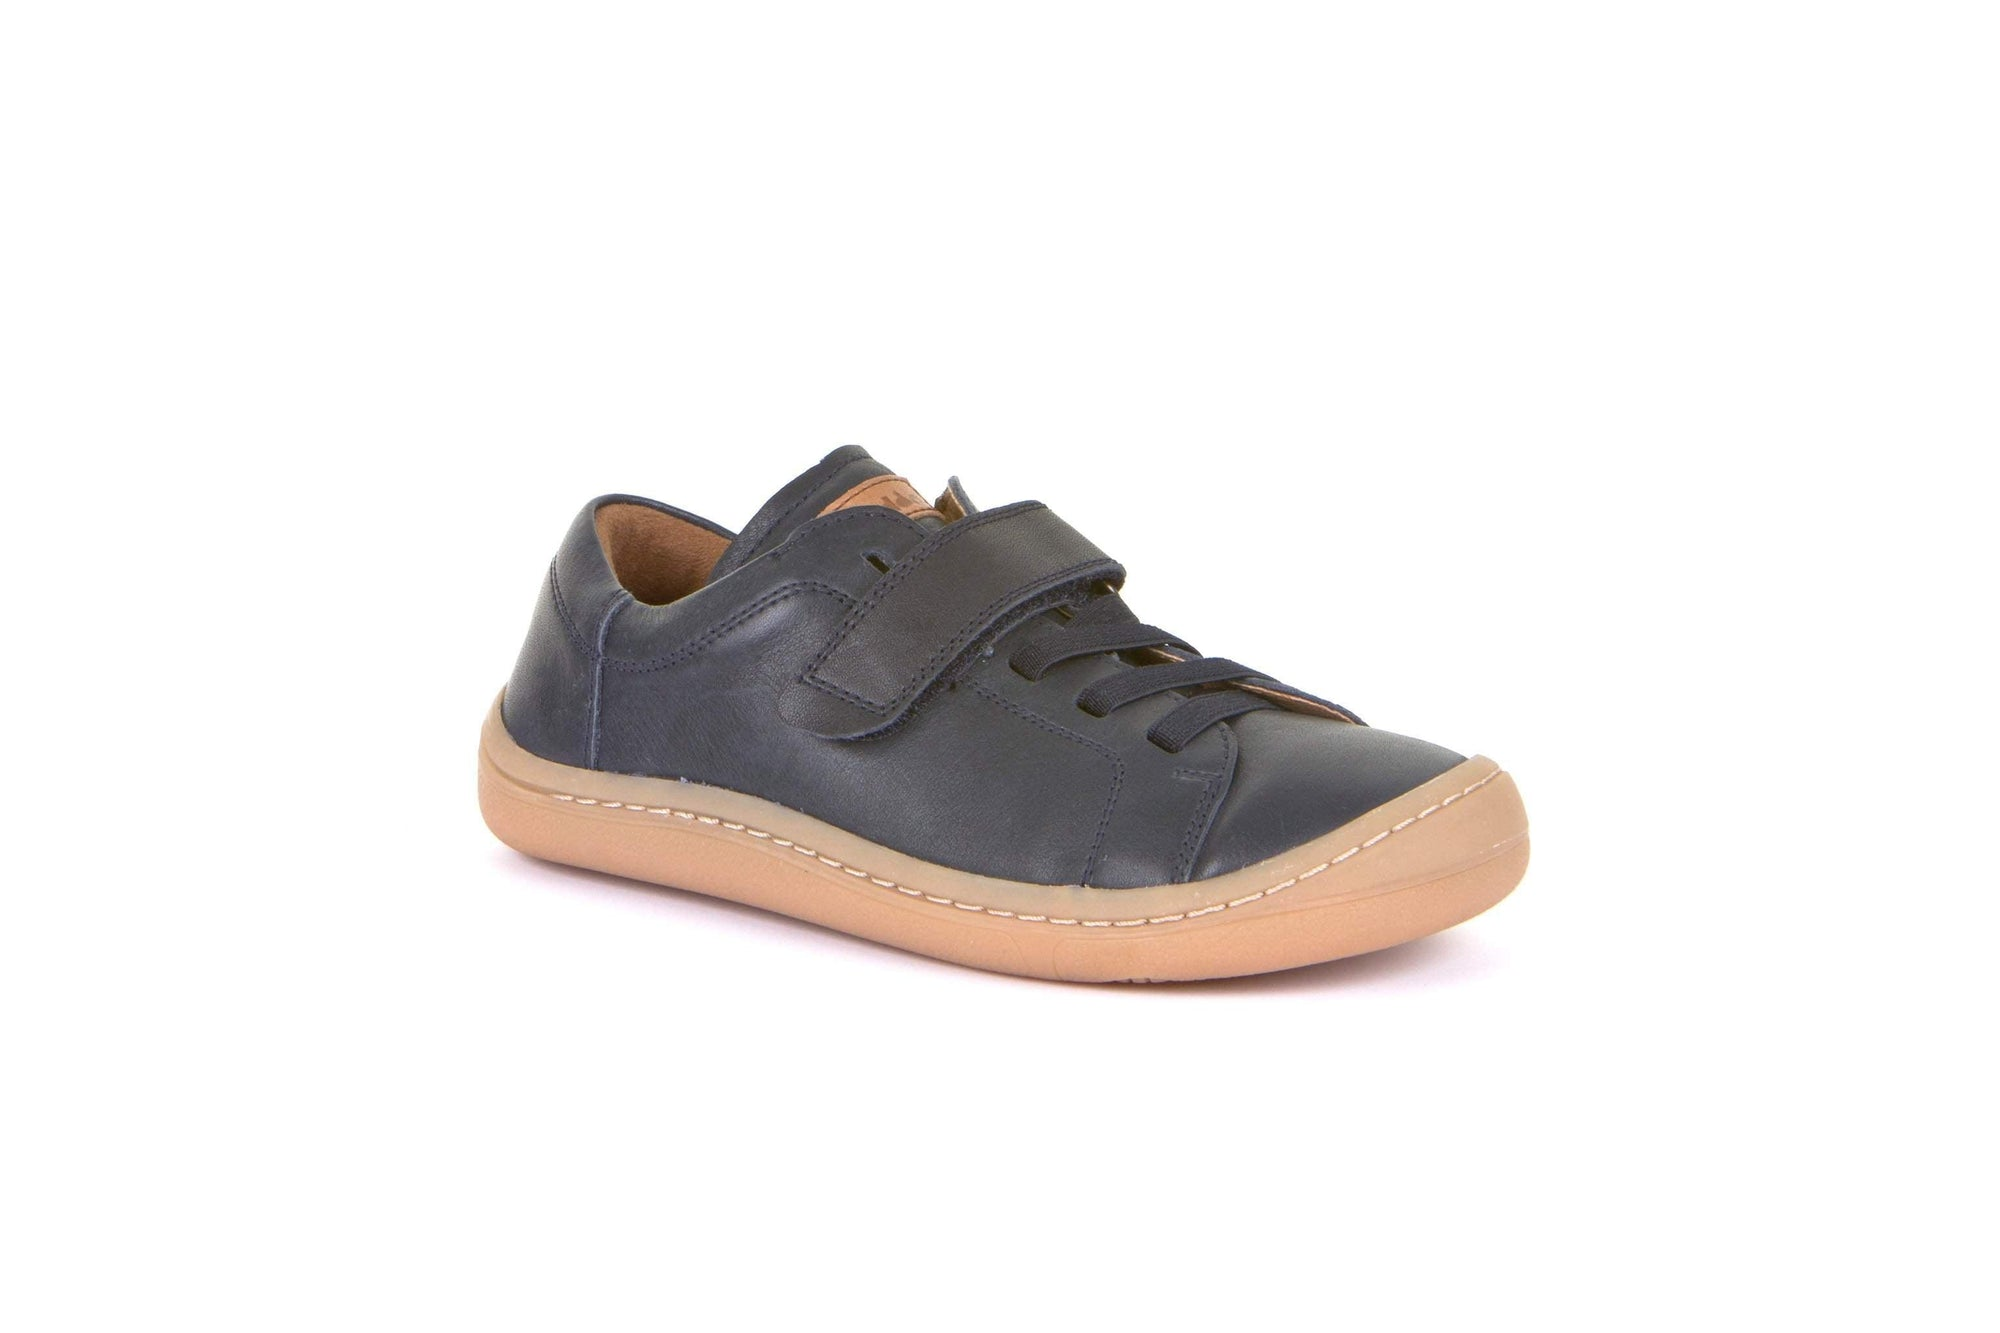 Froddo/G3130149-1/Black/Boys Leather Shoes - ShoeKid.ca